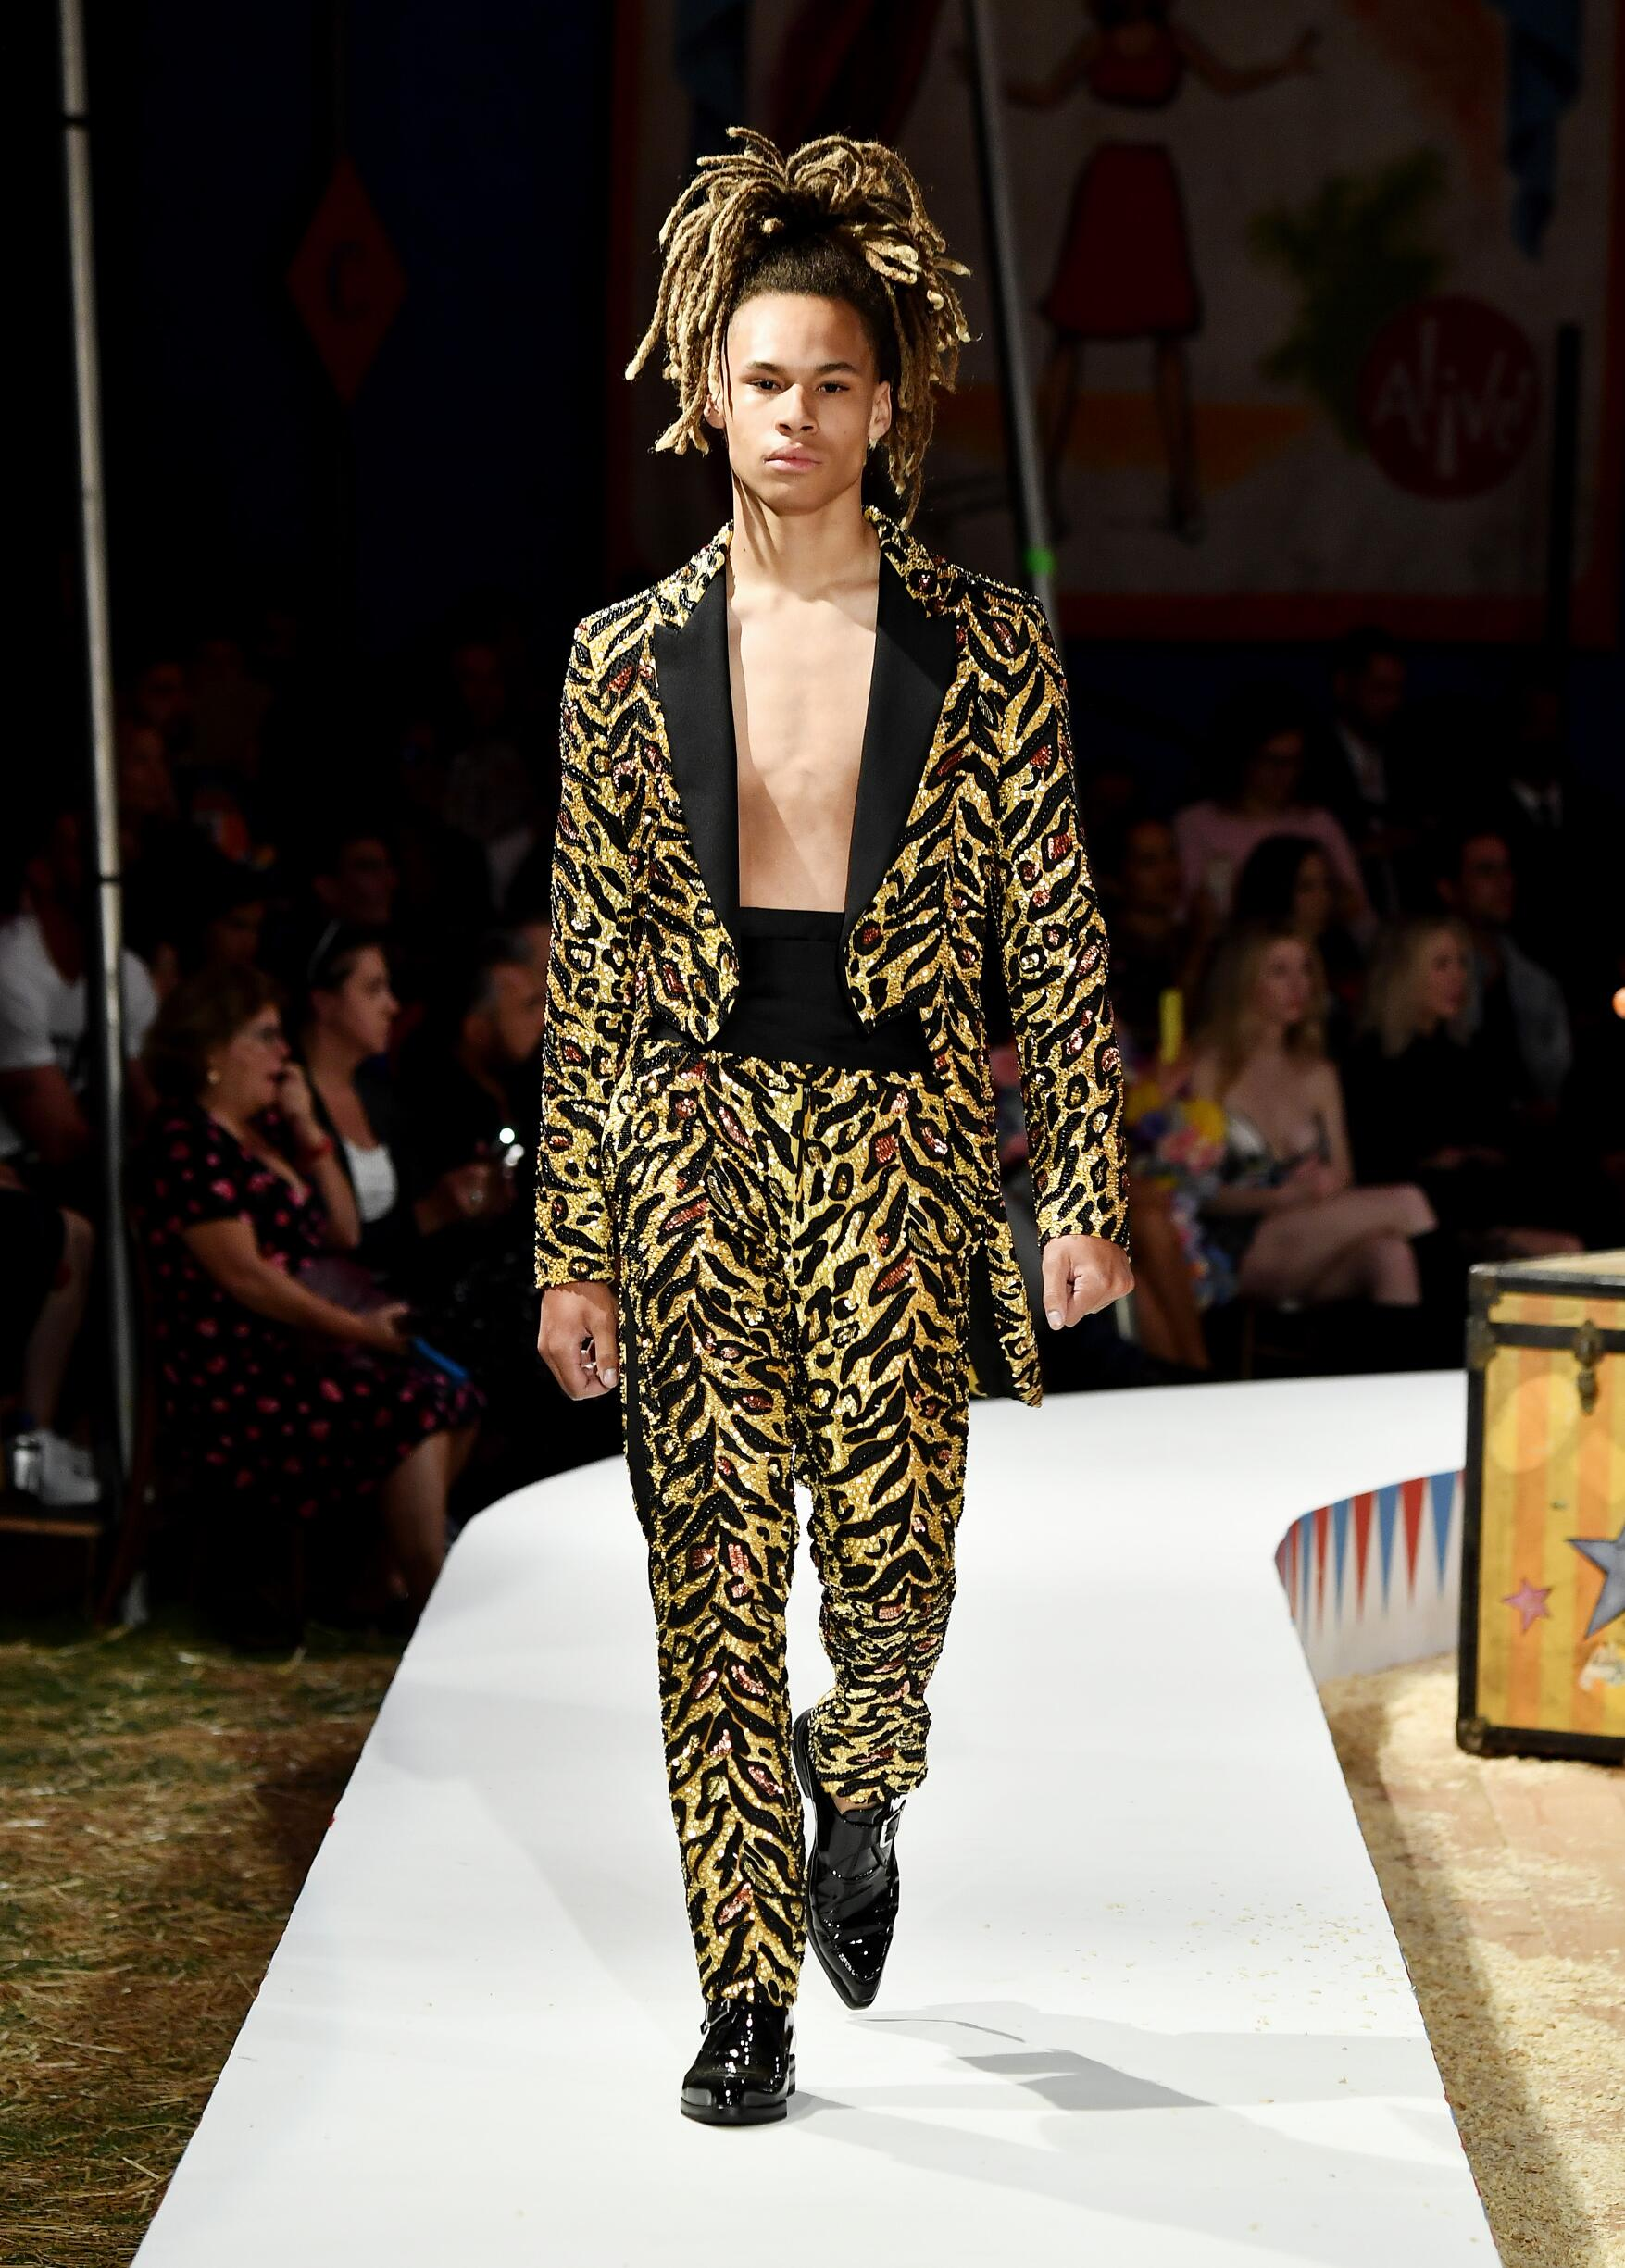 Moschino Spring Summer 2019 Menswear and Women's Resort Collection Look 58 Los Angeles